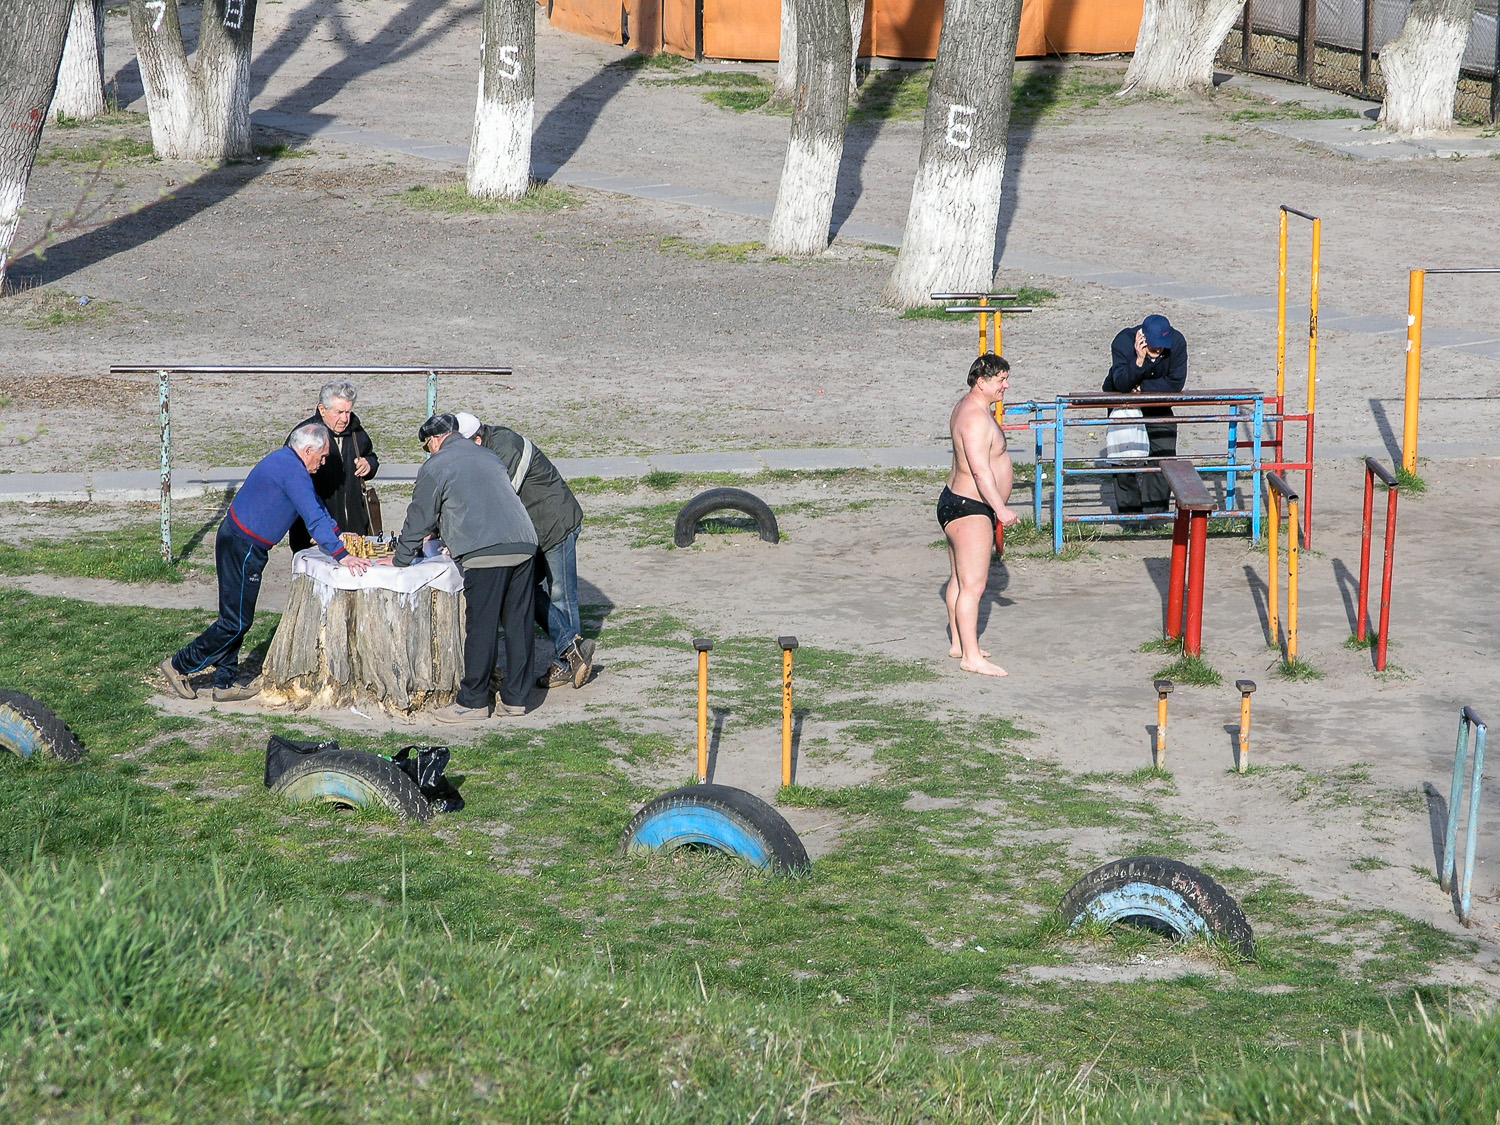 Men playing chess in a playground on 'Hidropark', an island in the middle of the Dnieper river in Kiev. The island is a popular place for recreation in the summer months.